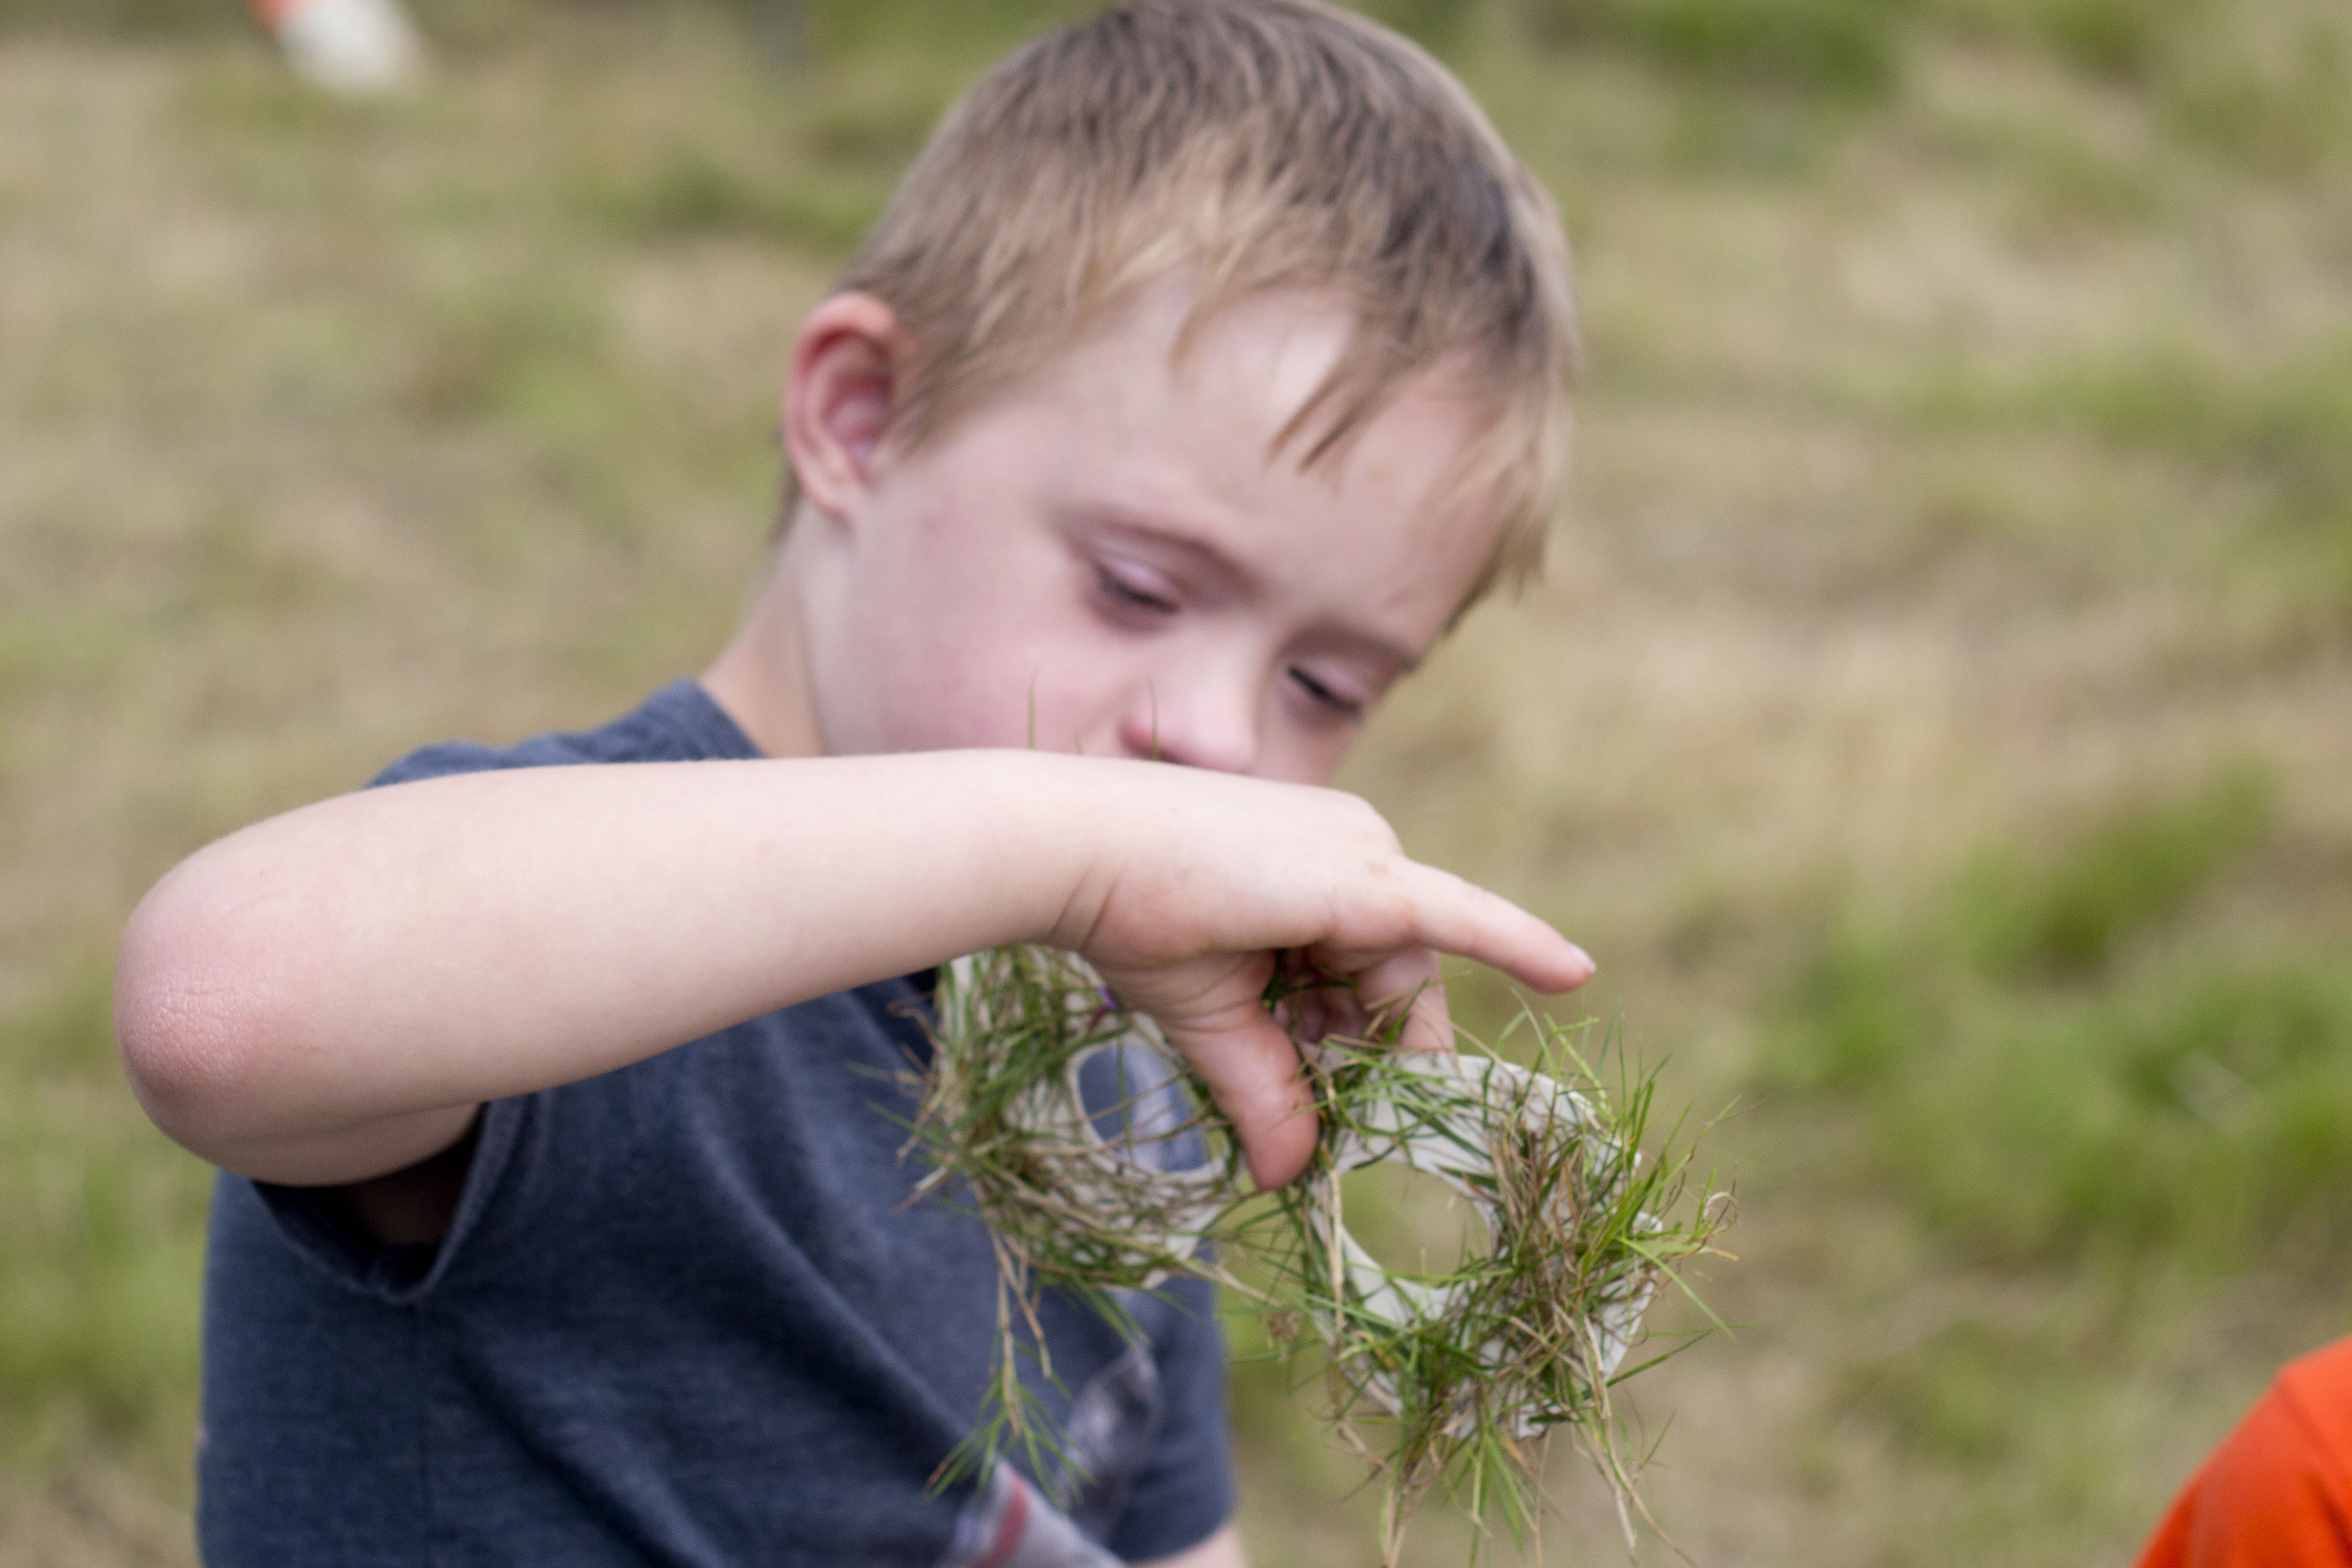 Young boy immersed in nature activity